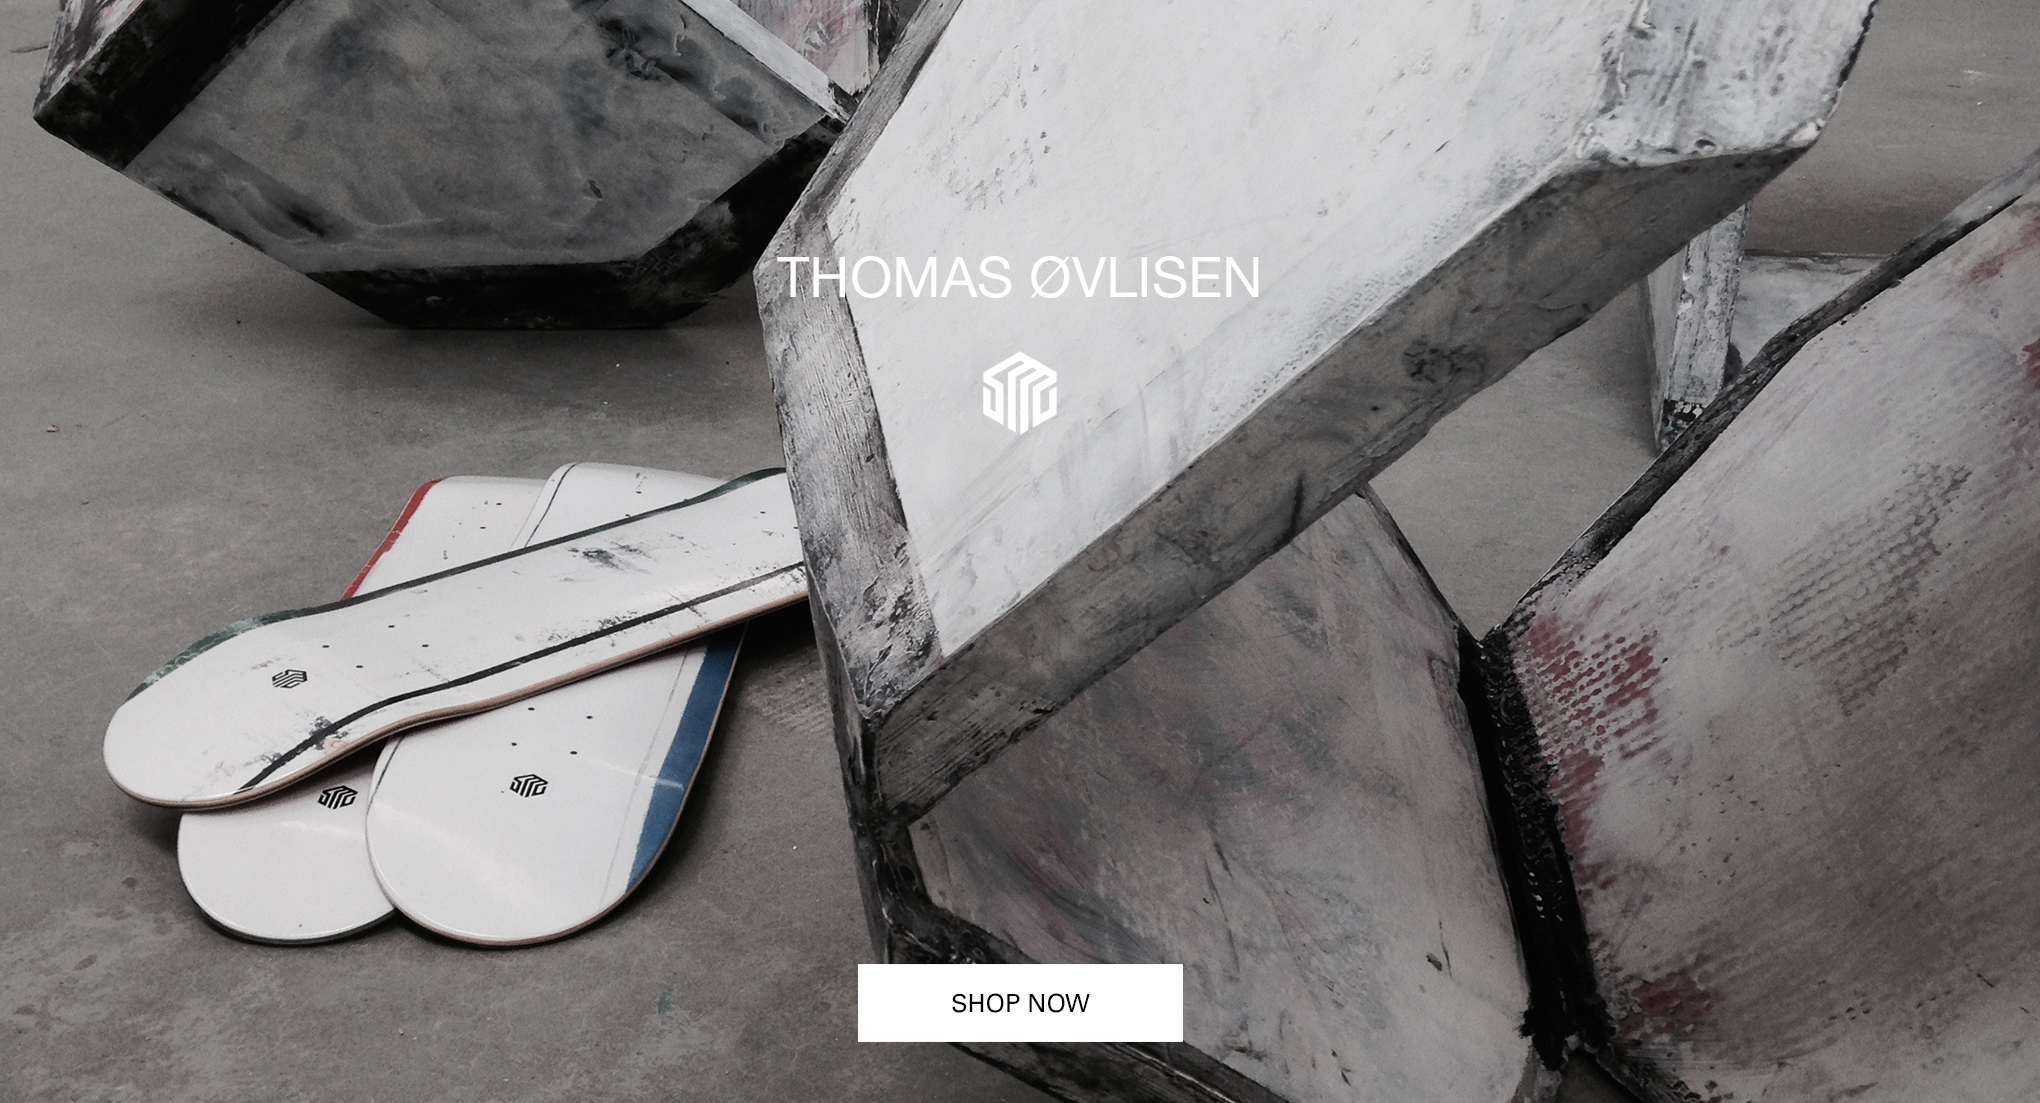 THOMAS ØVLISEN X STREETMACHINE. NEW SKATEBOARDS NOW AVAILABLE - SHOP NOW AT STREETMACHINE!